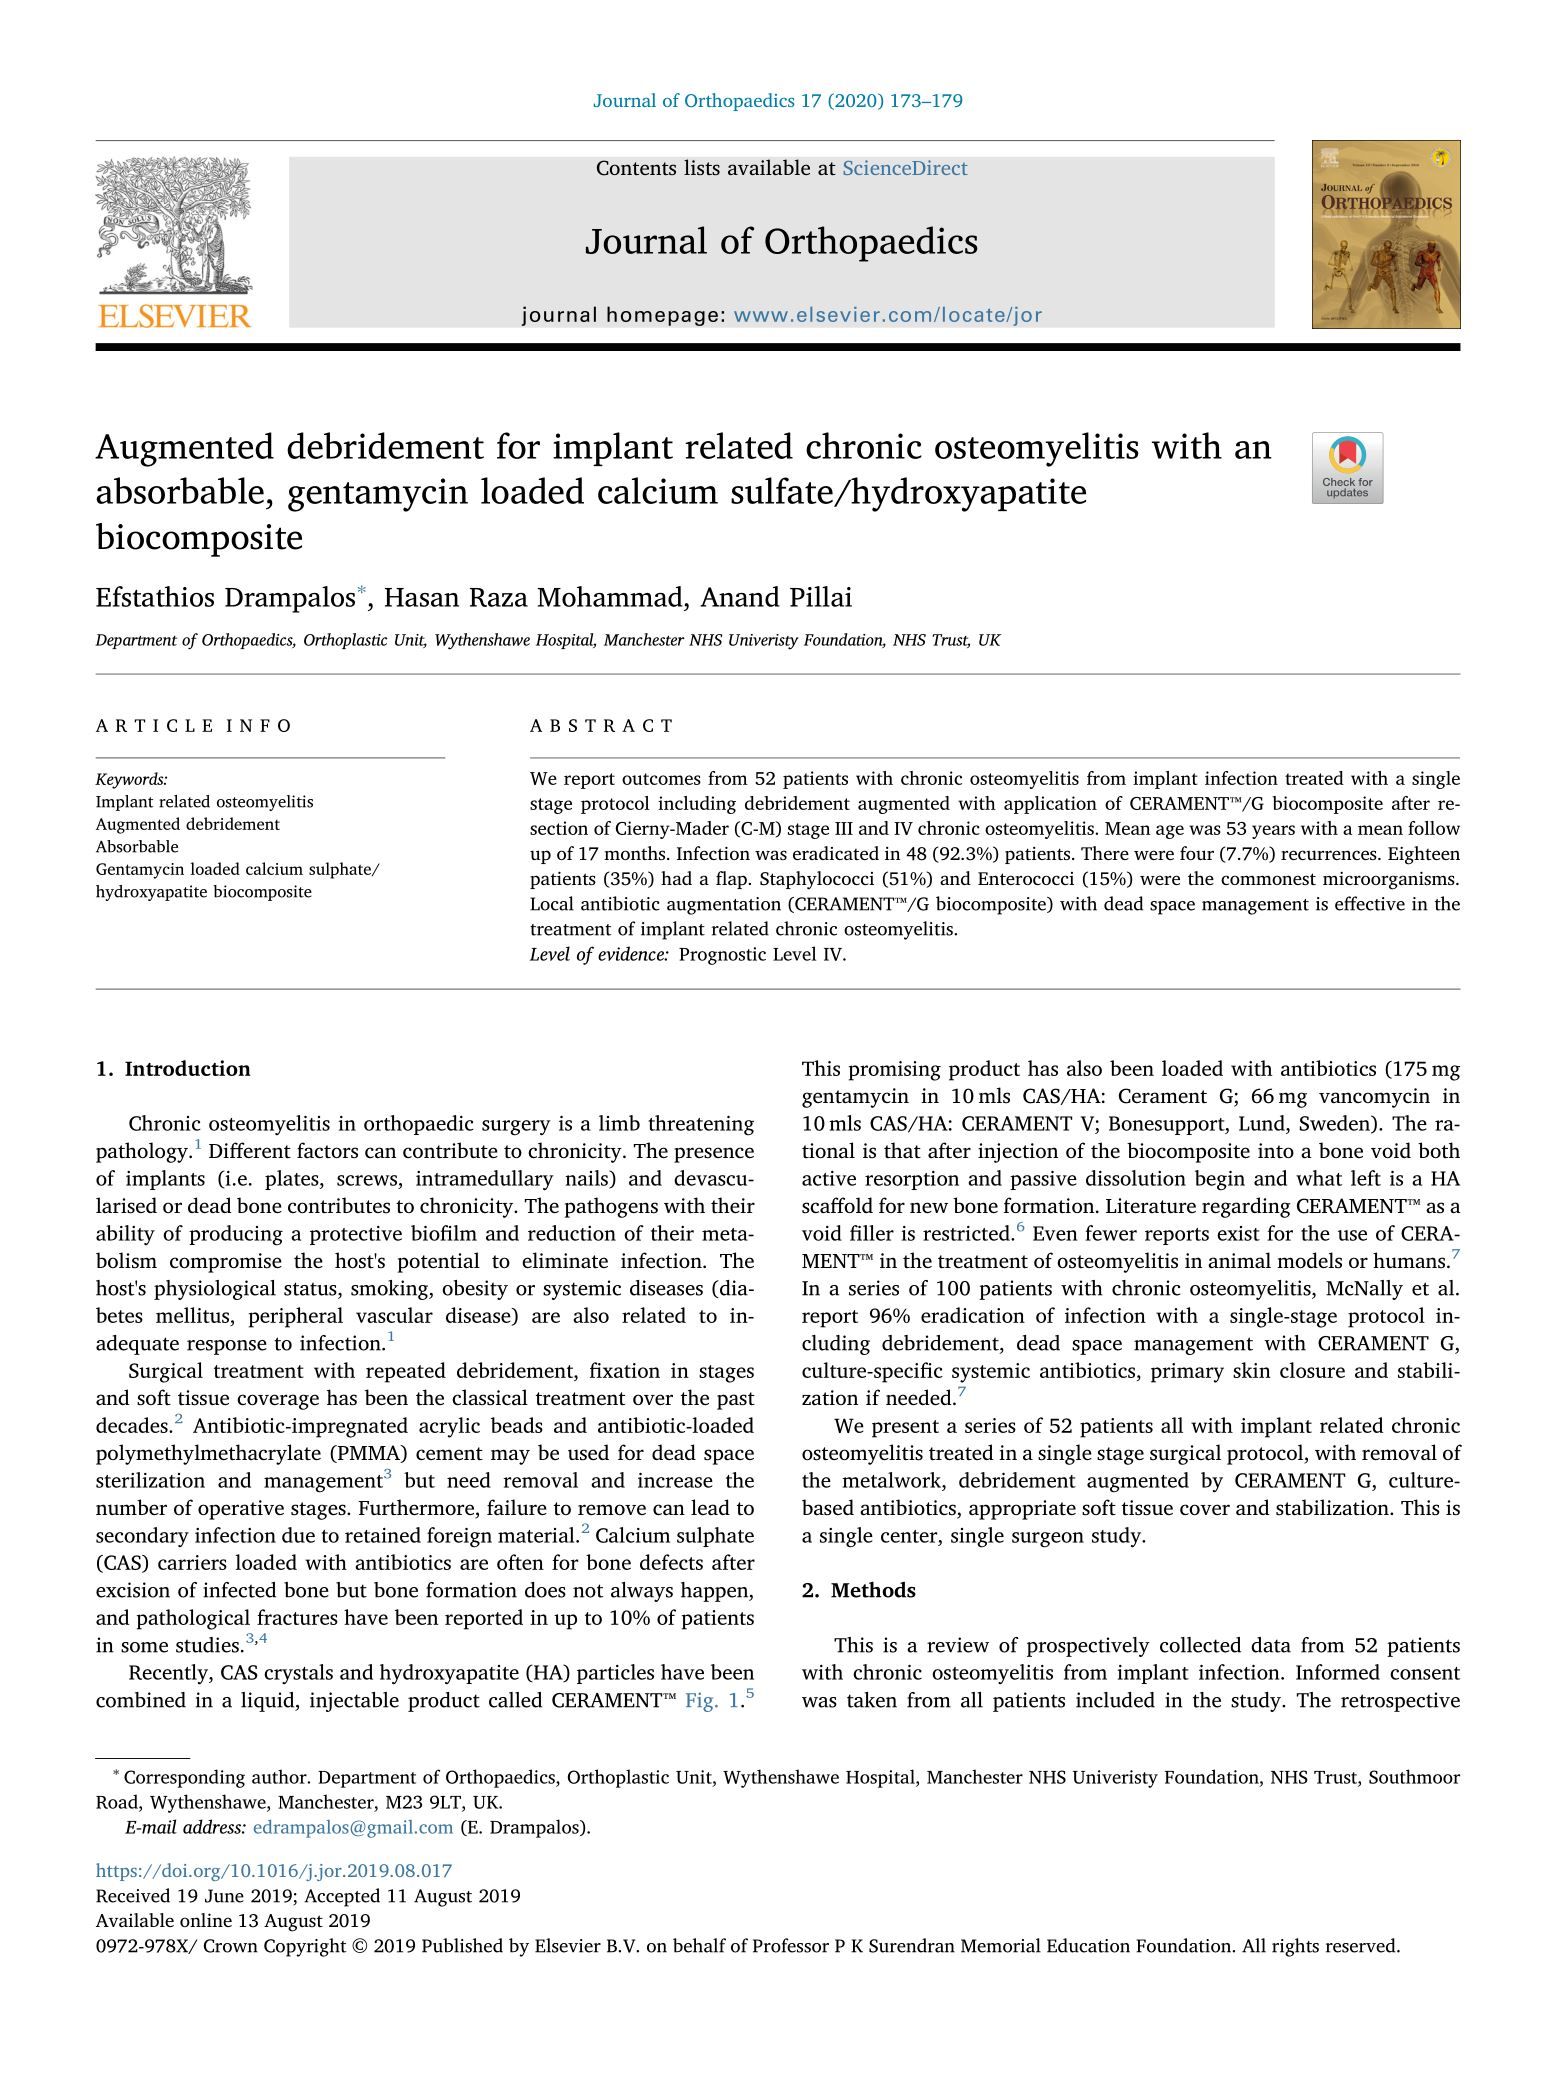 Augmented debridement for implant related chronic osteomyelitis with an absorbable, gentamycin loaded calcium sulfate/hydroxyapatite biocomposite